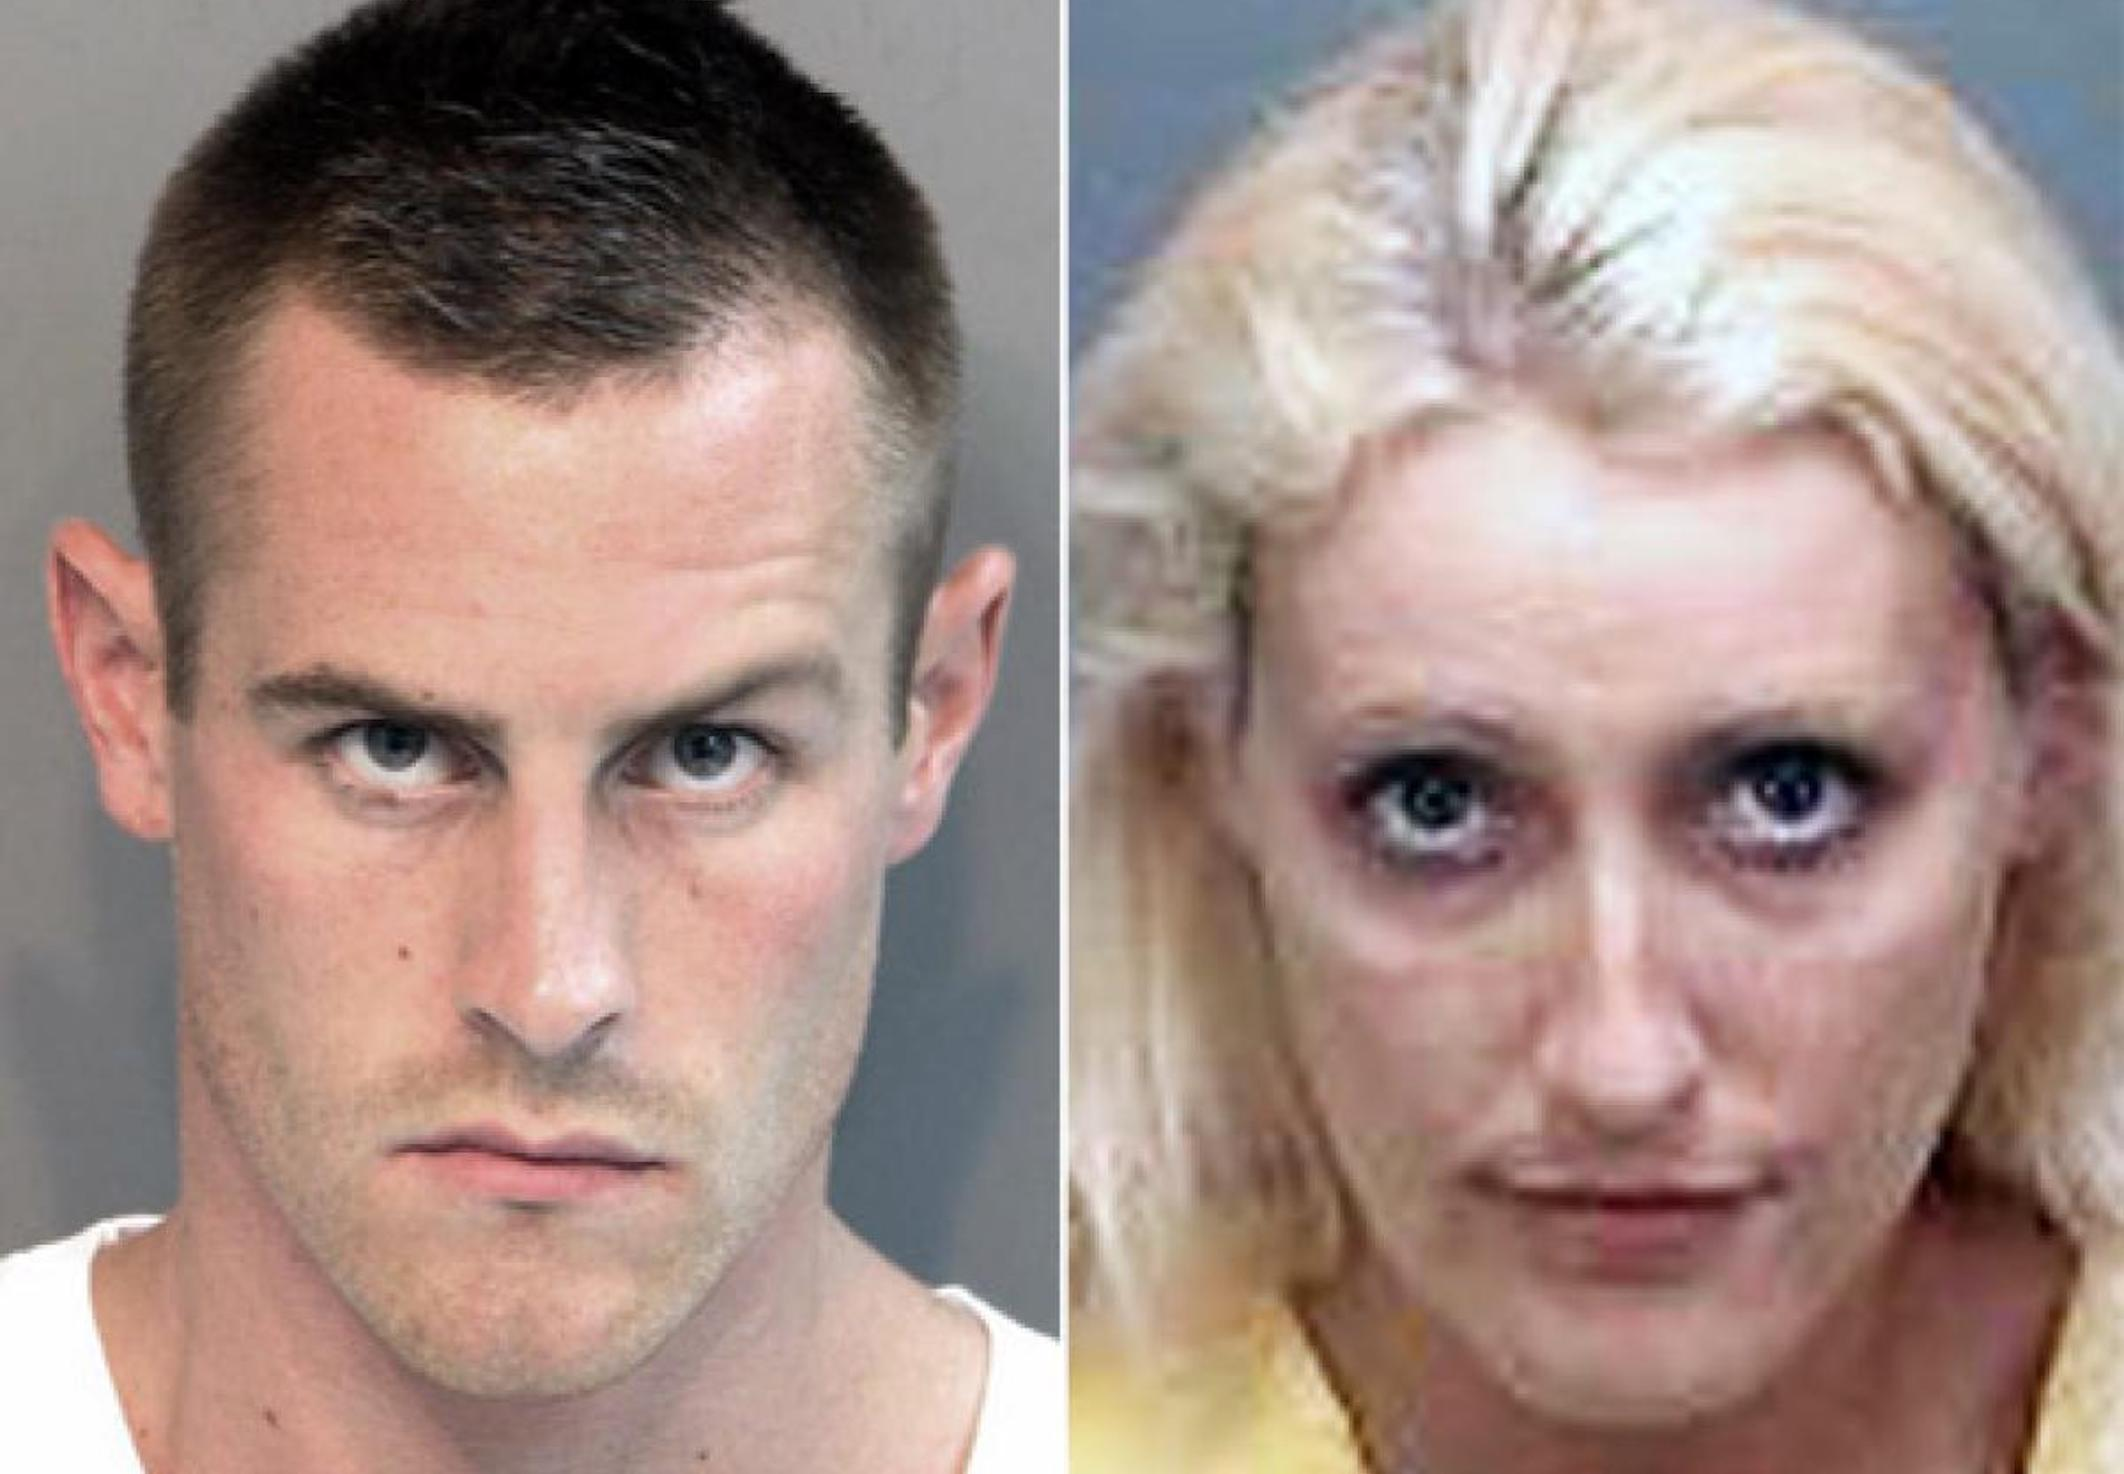 Porn Star Couple Has Sex Immediately After Murdering Man In Middle Of Erotic Massage Martinis Murder